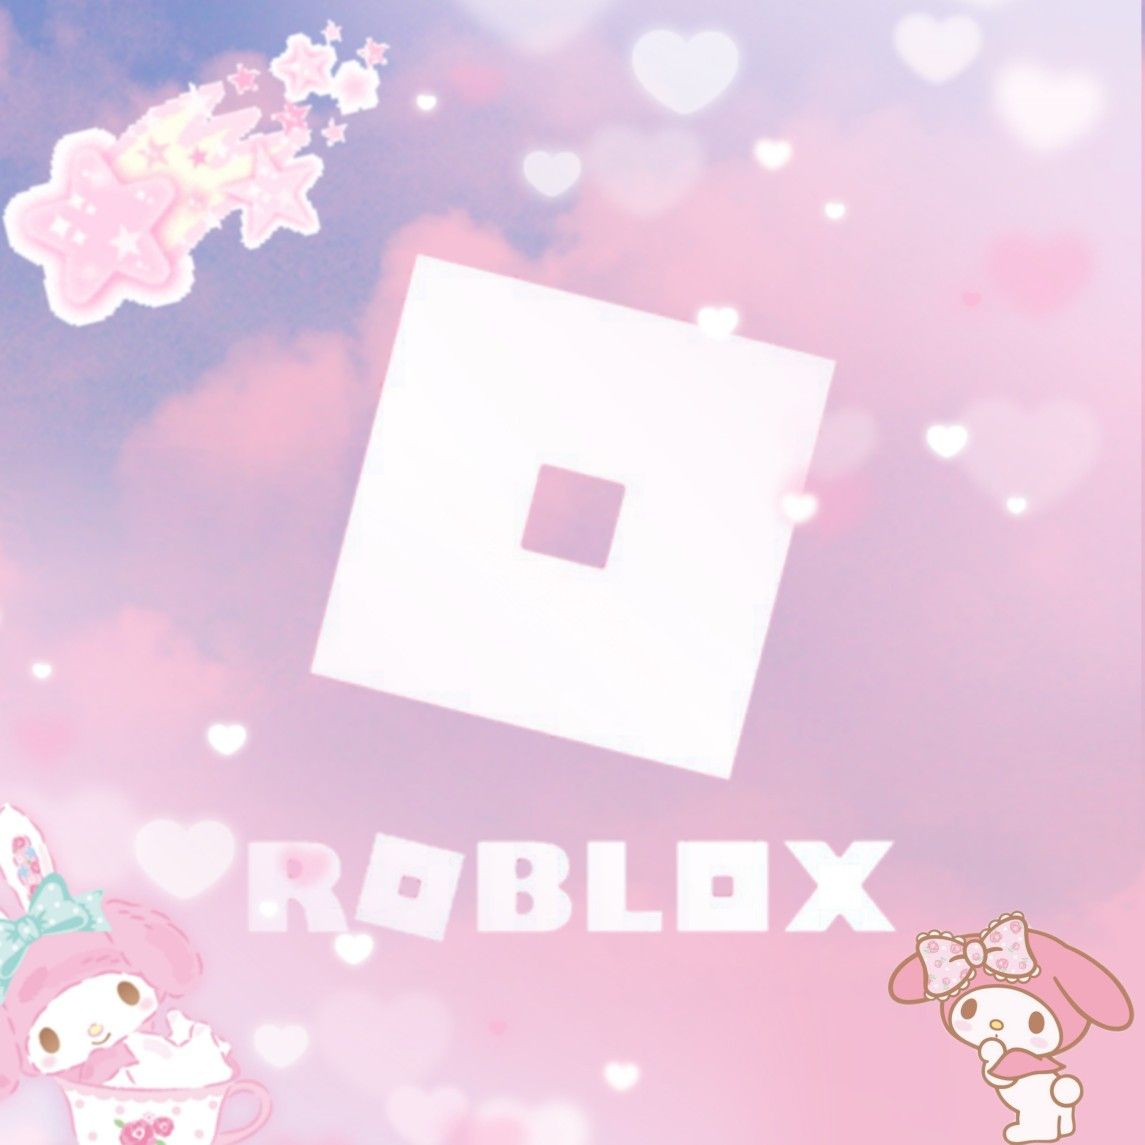 Roblox Pink Melody In 2020 Iphone Wallpaper Tumblr Aesthetic Pretty Wallpaper Iphone Girl Iphone Wallpaper